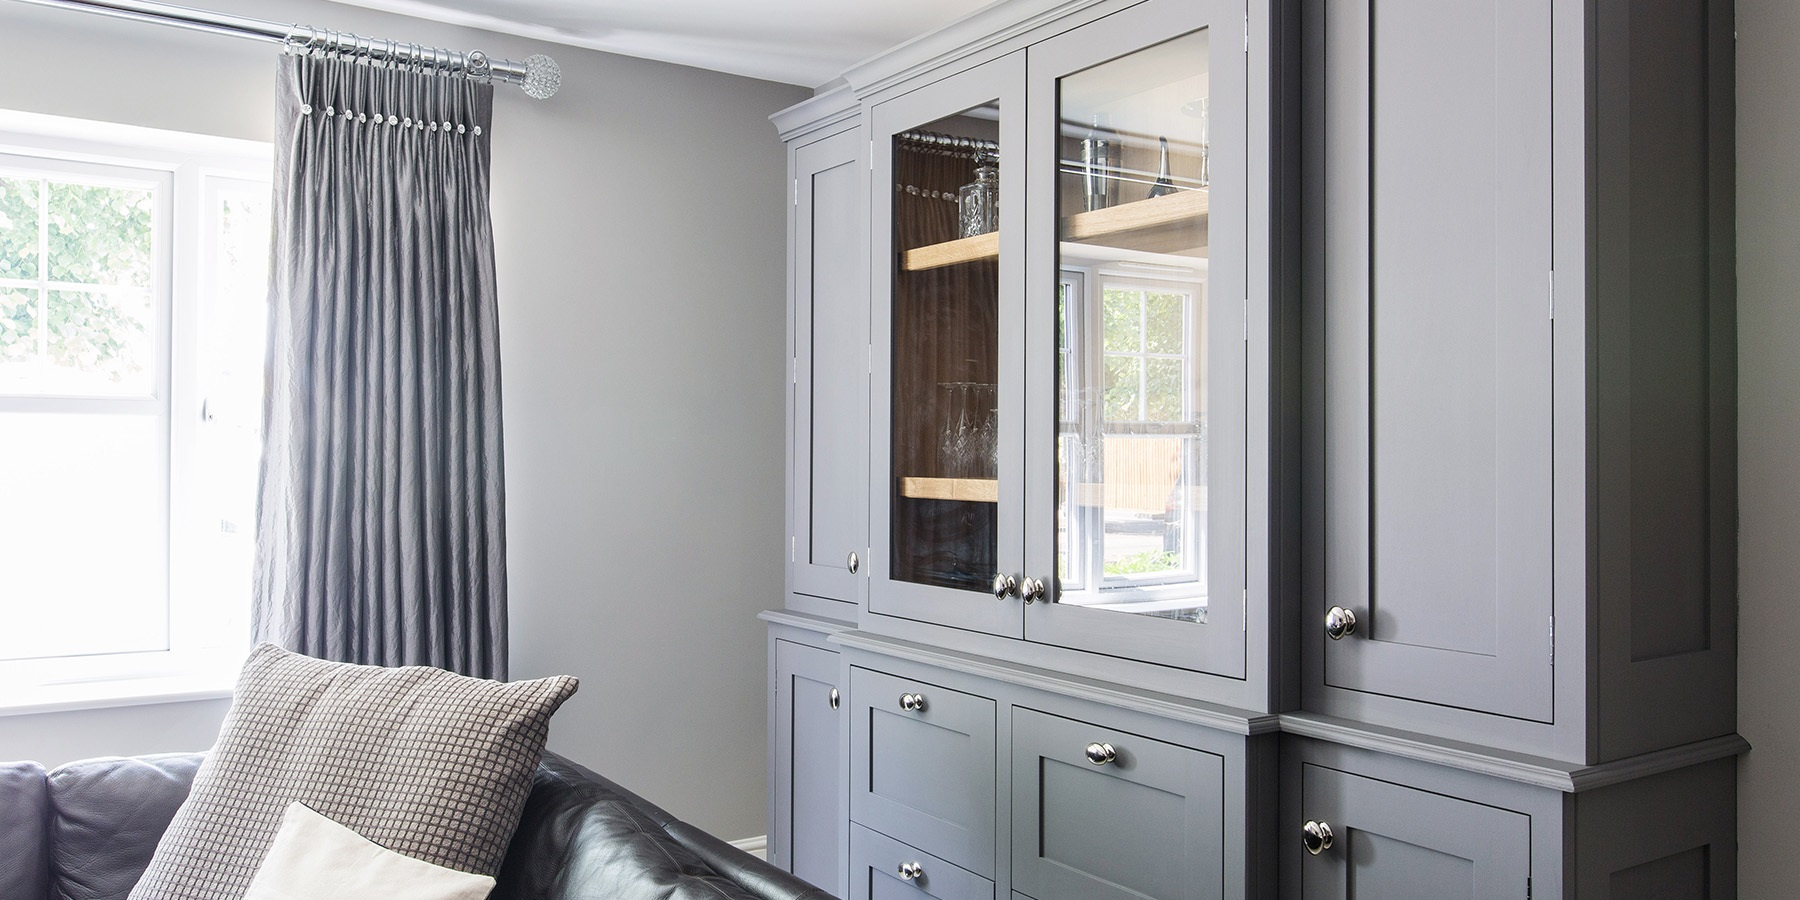 Bespoke Living Room Dresser - Handmade grey dresser unit with glass shelves and doors.